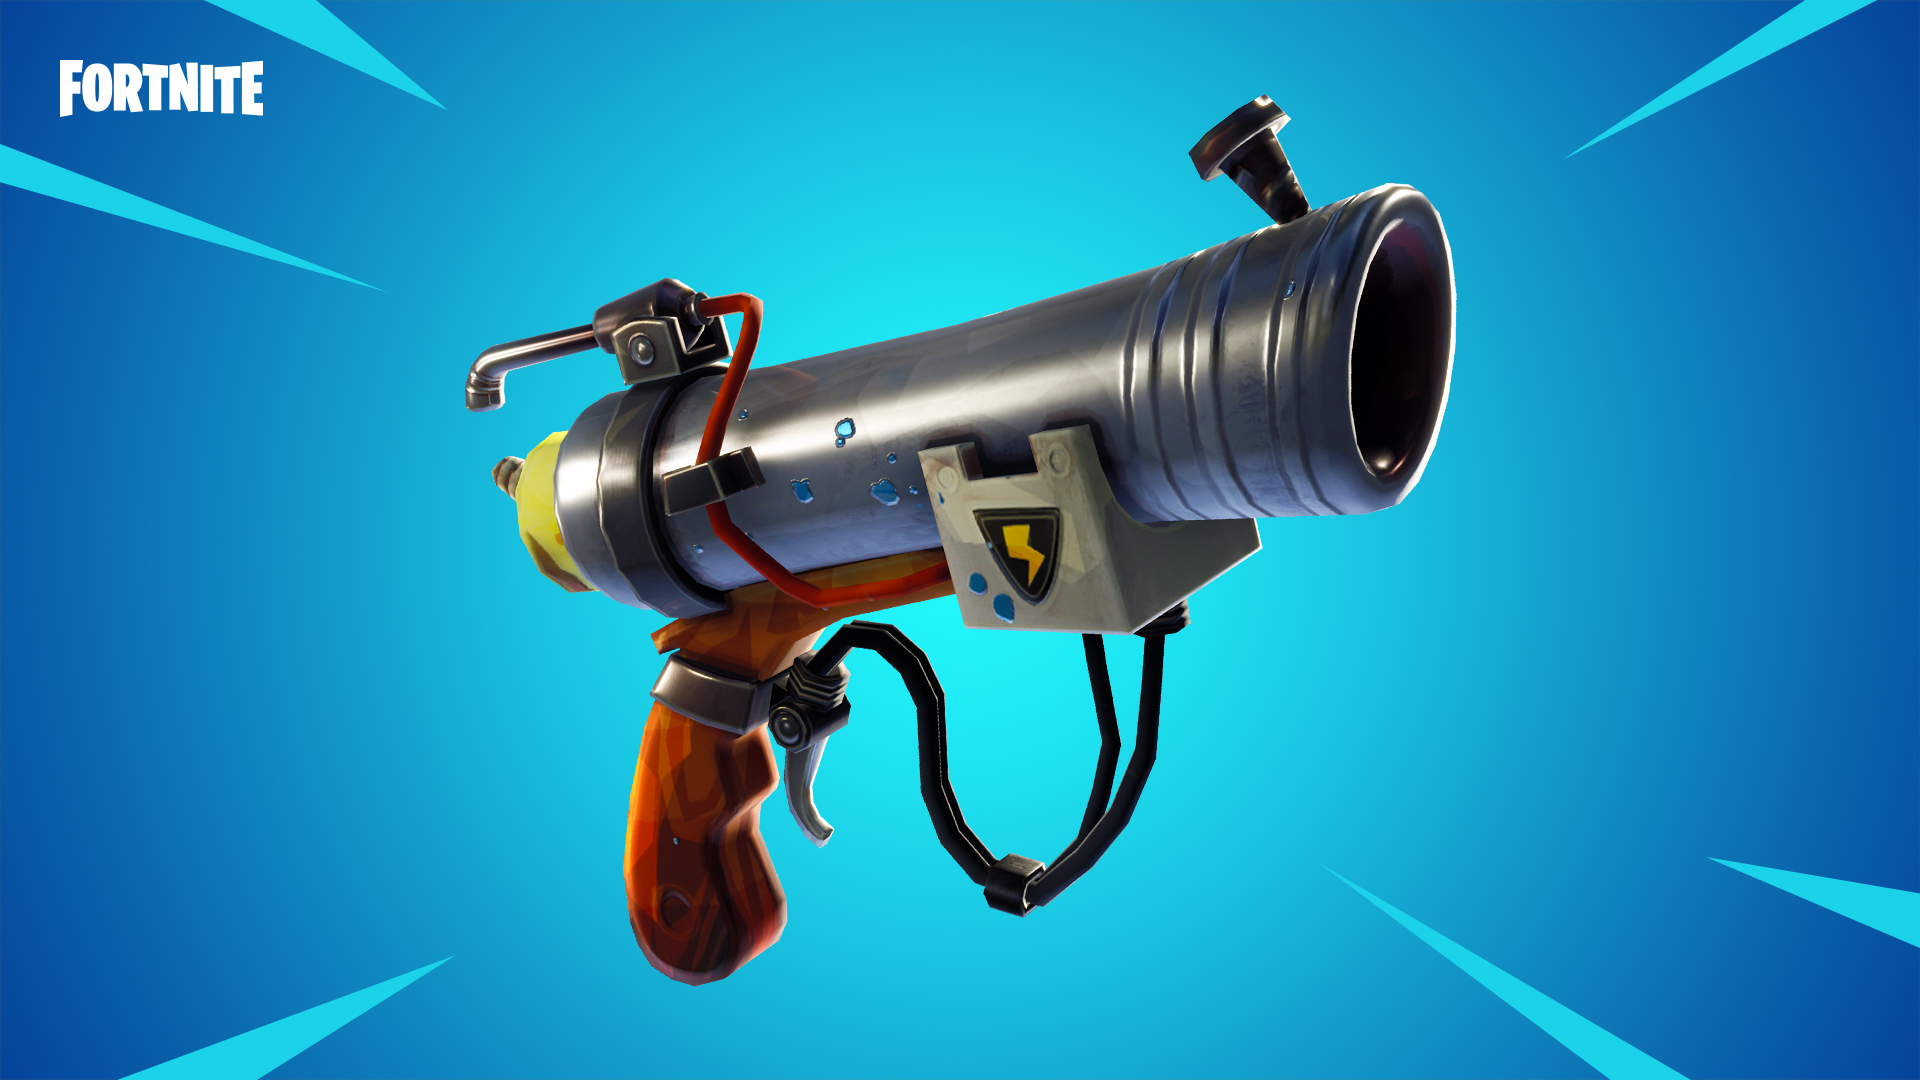 Fortnite Content Update V45 Adds The Tommy Gun